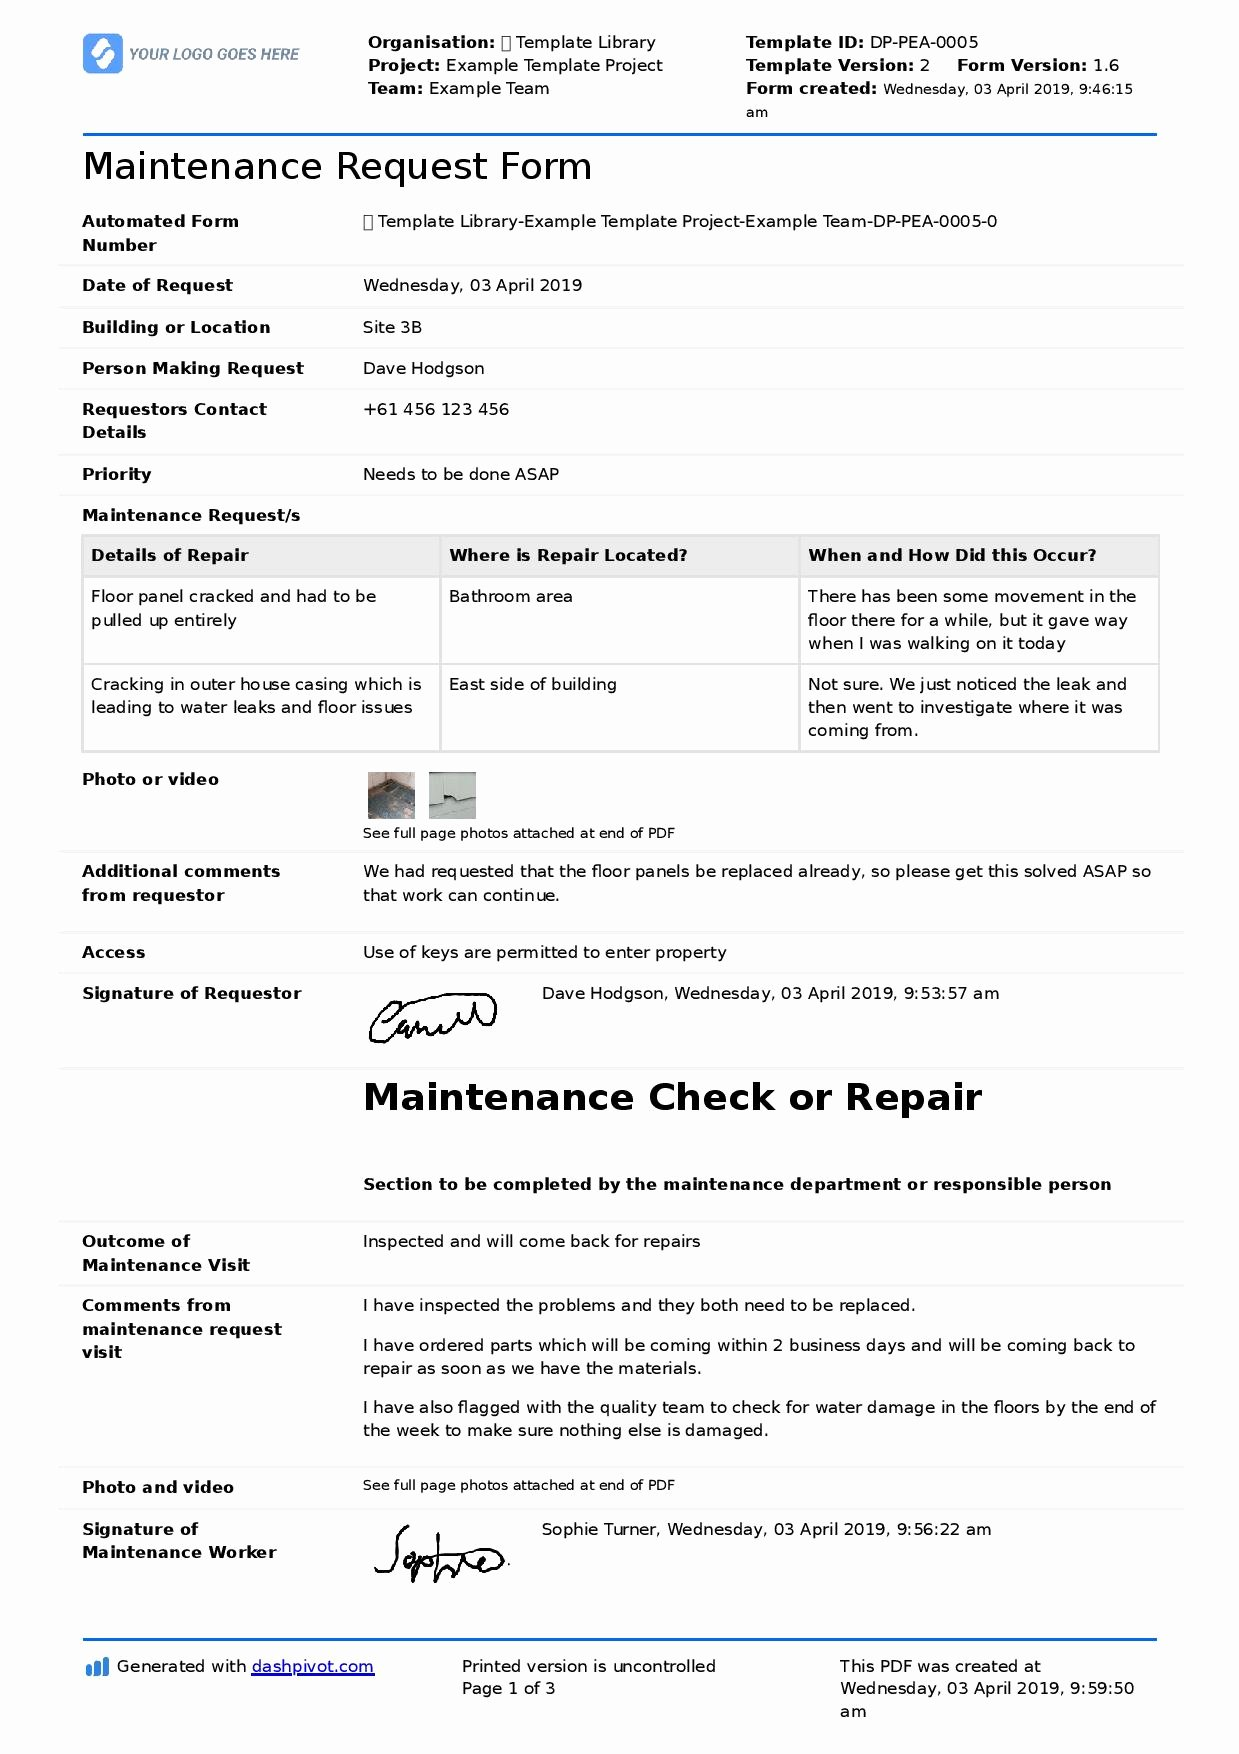 Maintenance Request form Template Awesome Maintenance Request form Template Better Than Pdf and Excel